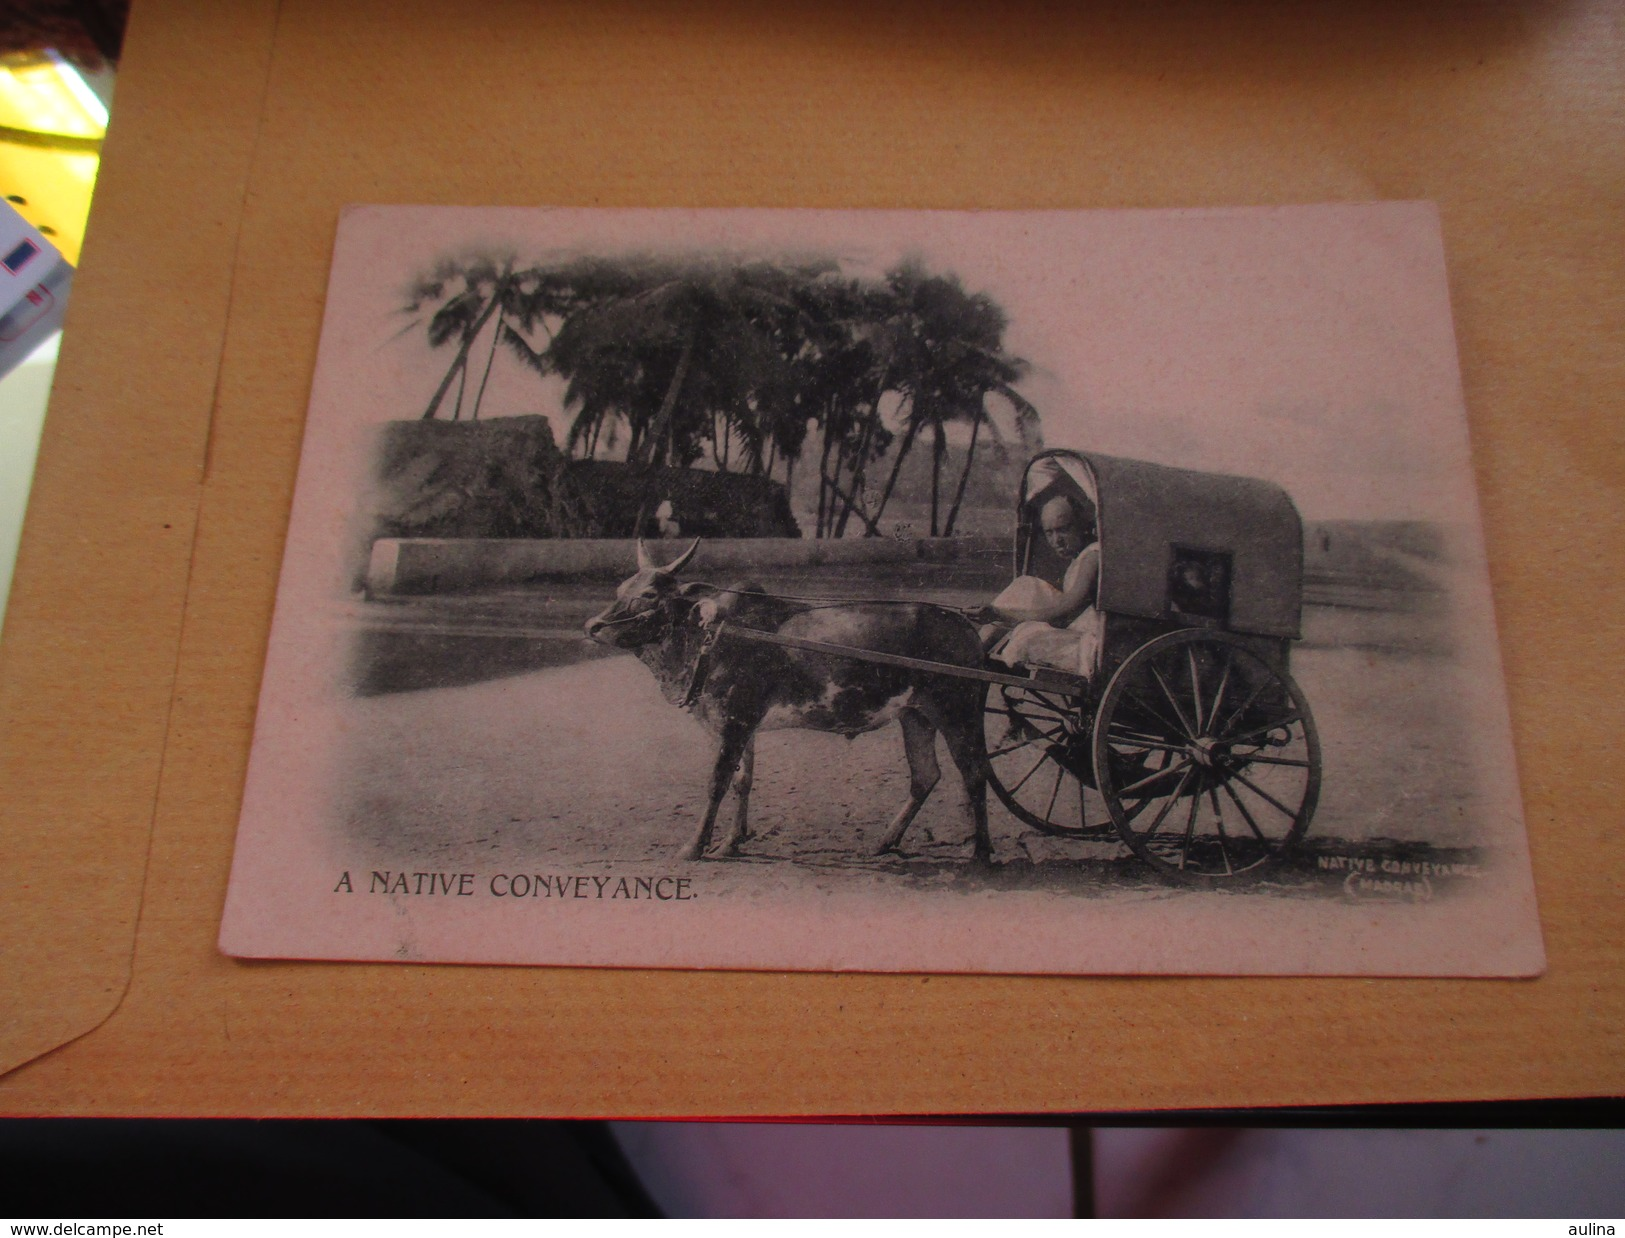 Cpa Asie Anciennes Colonies A Native Conveyance - Autres